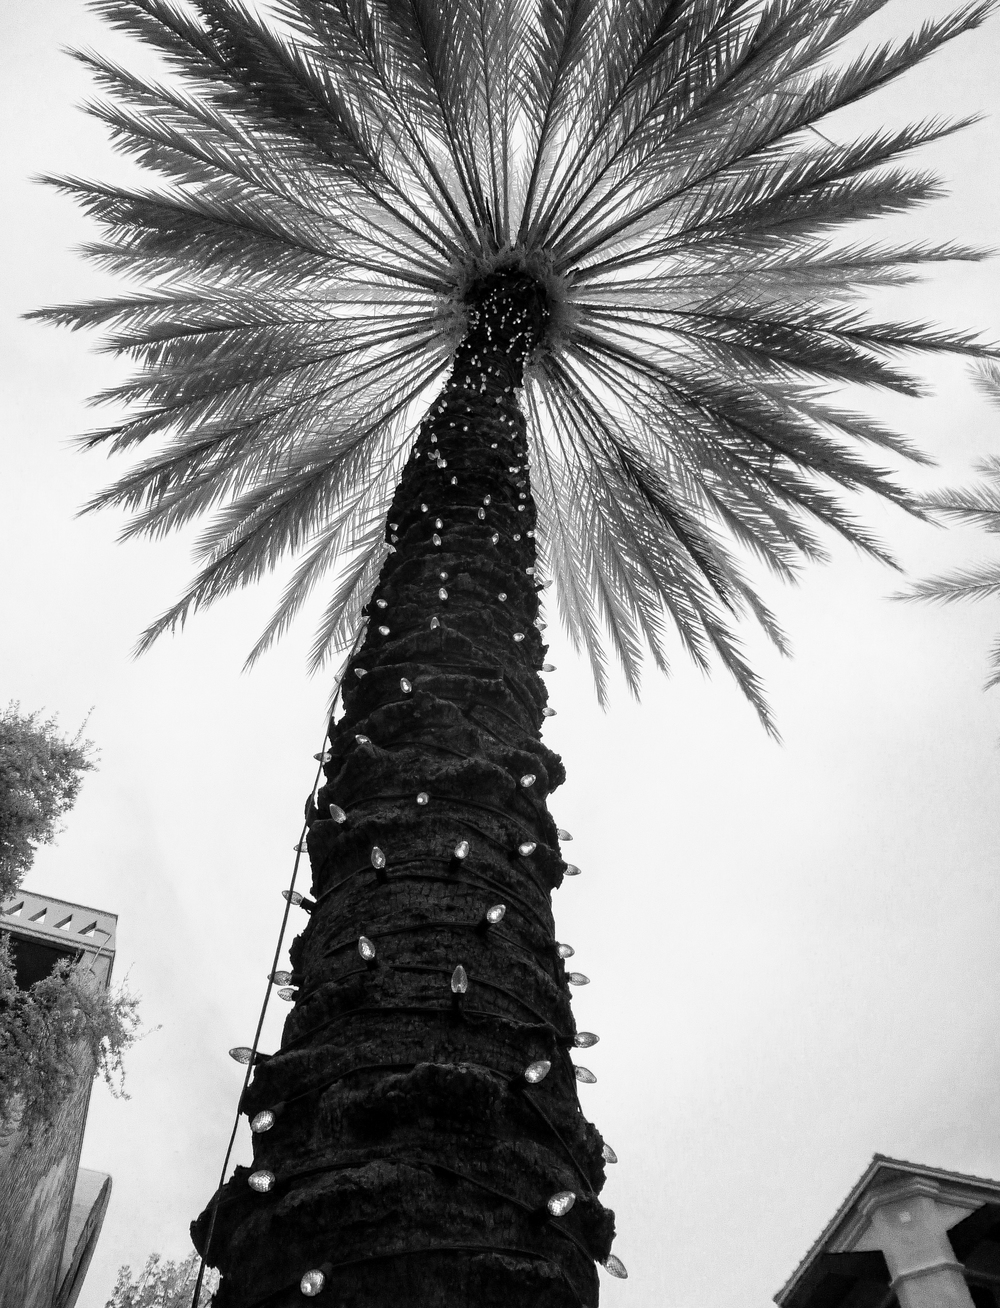 Lit Palm Tree In Coconut Grove (1 of 1).jpg